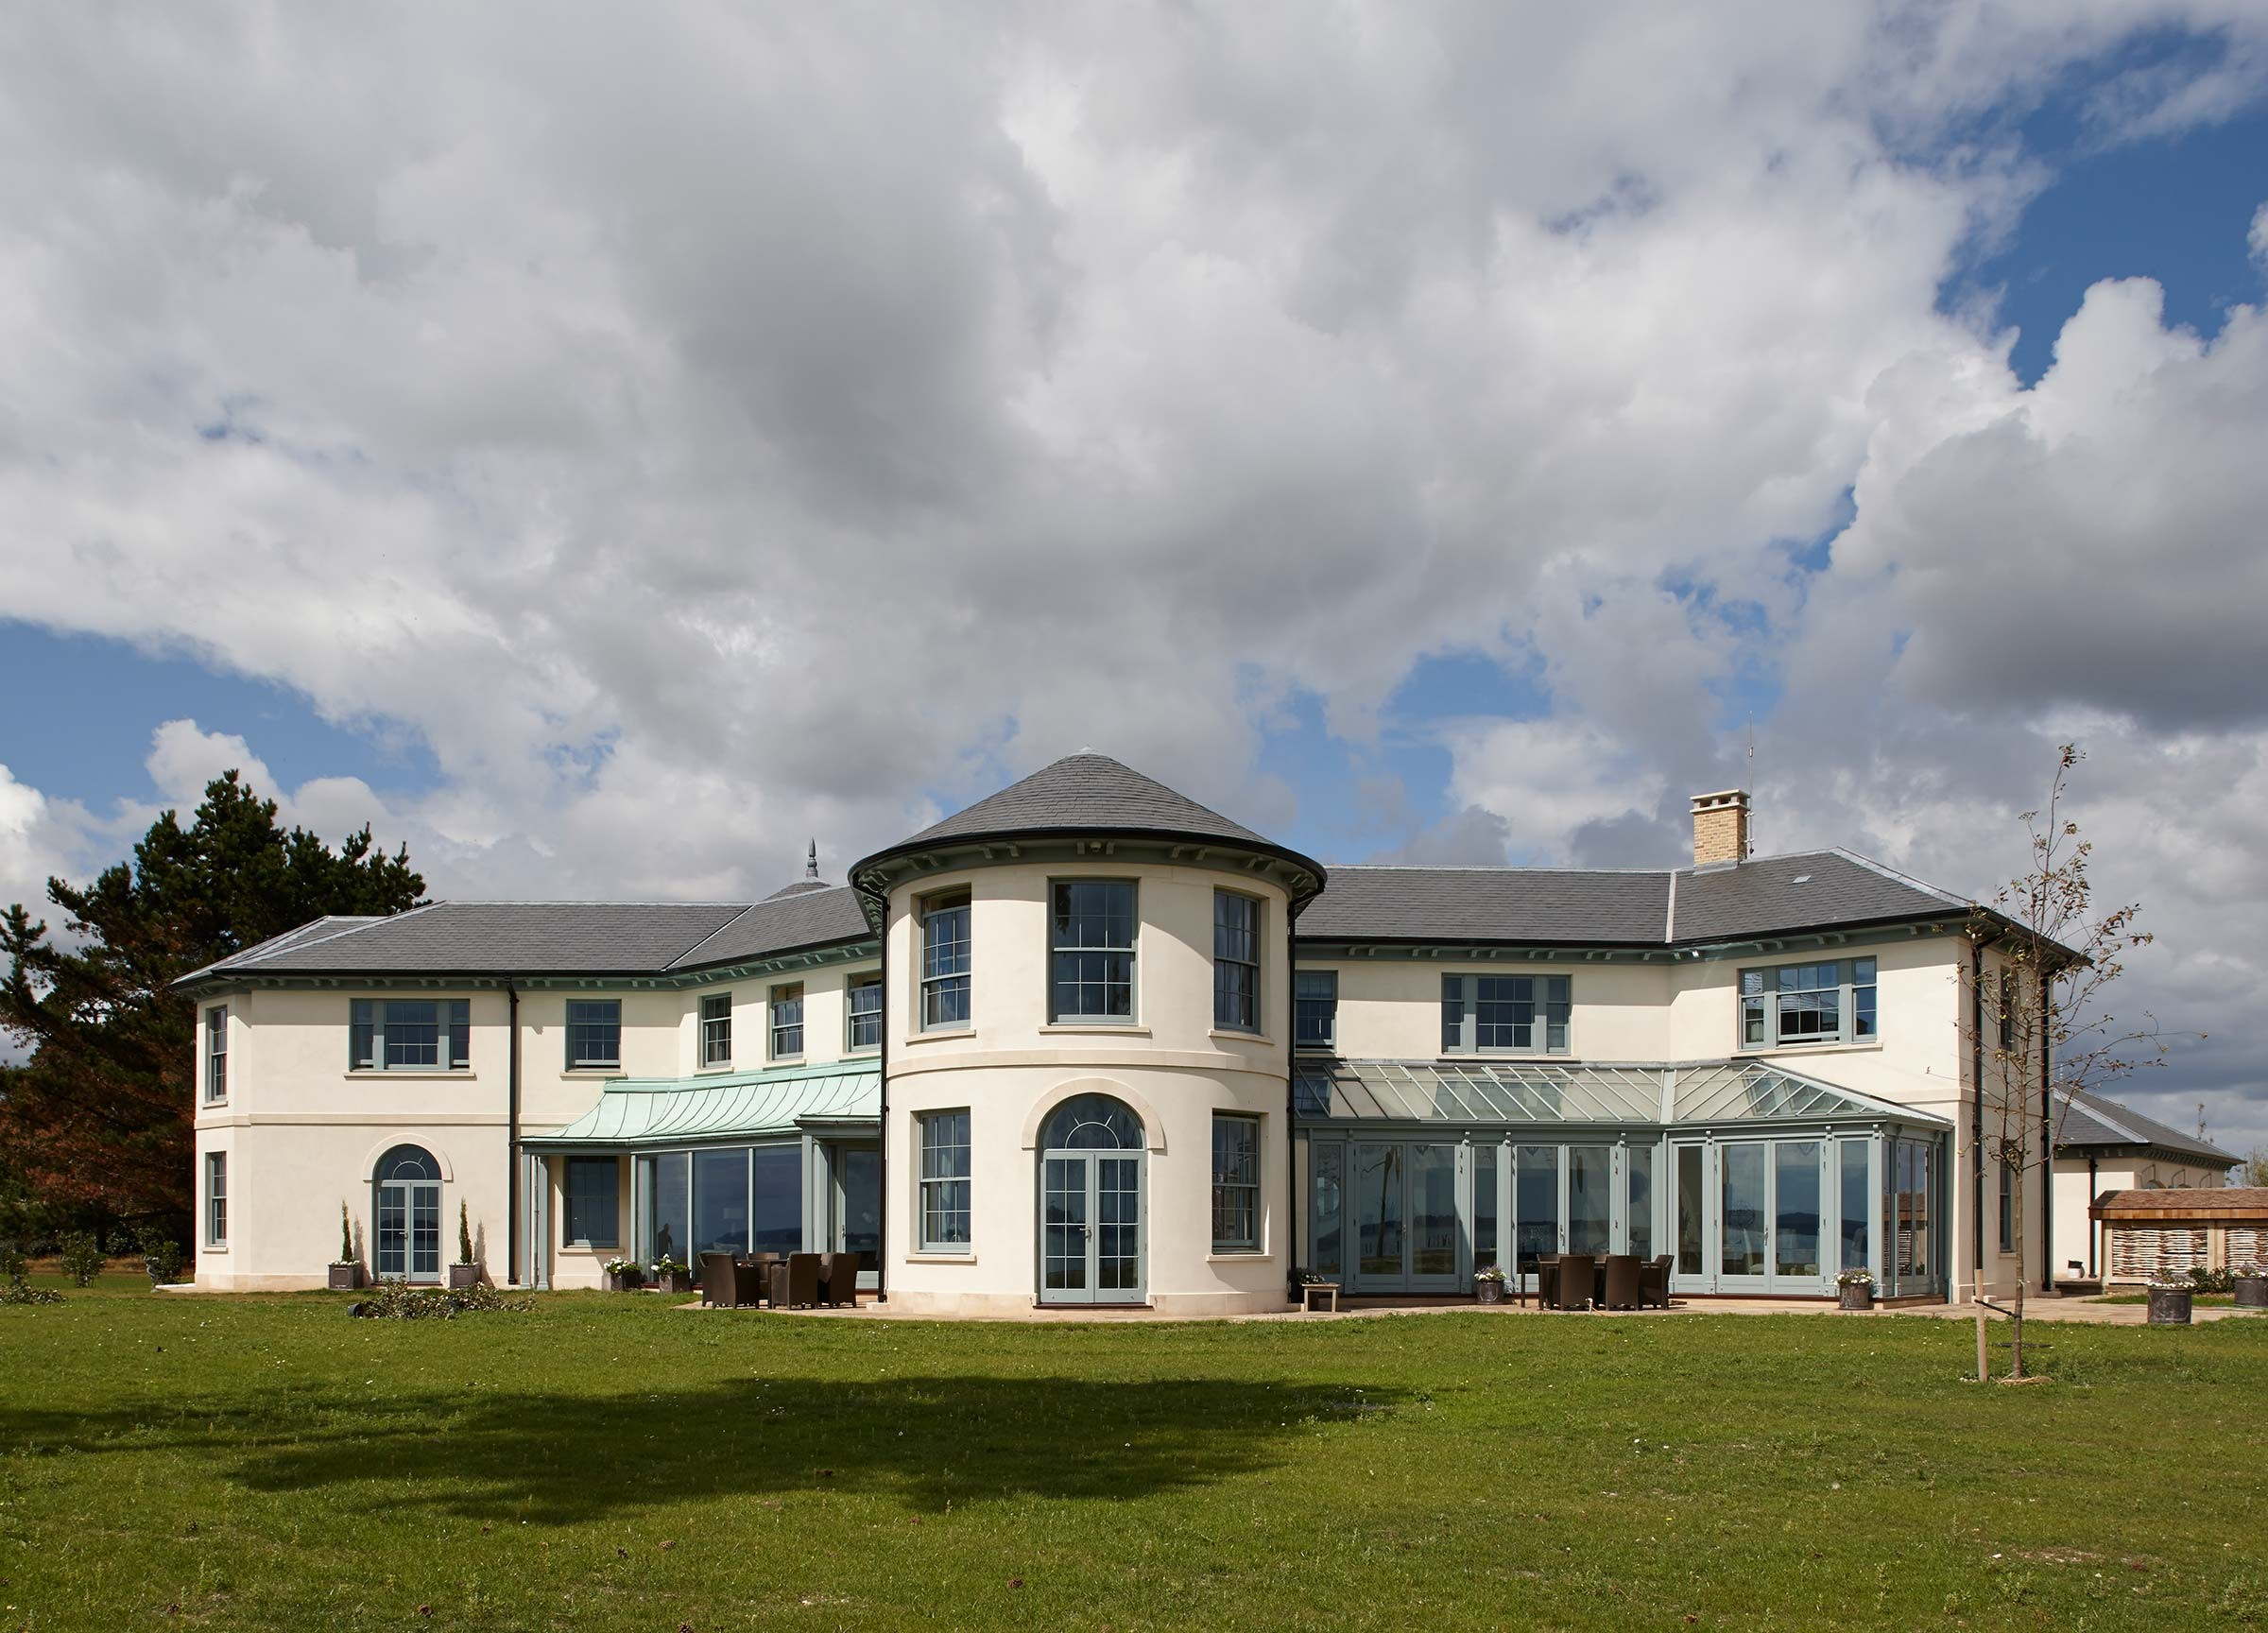 Replacement Regency house, Hampshire